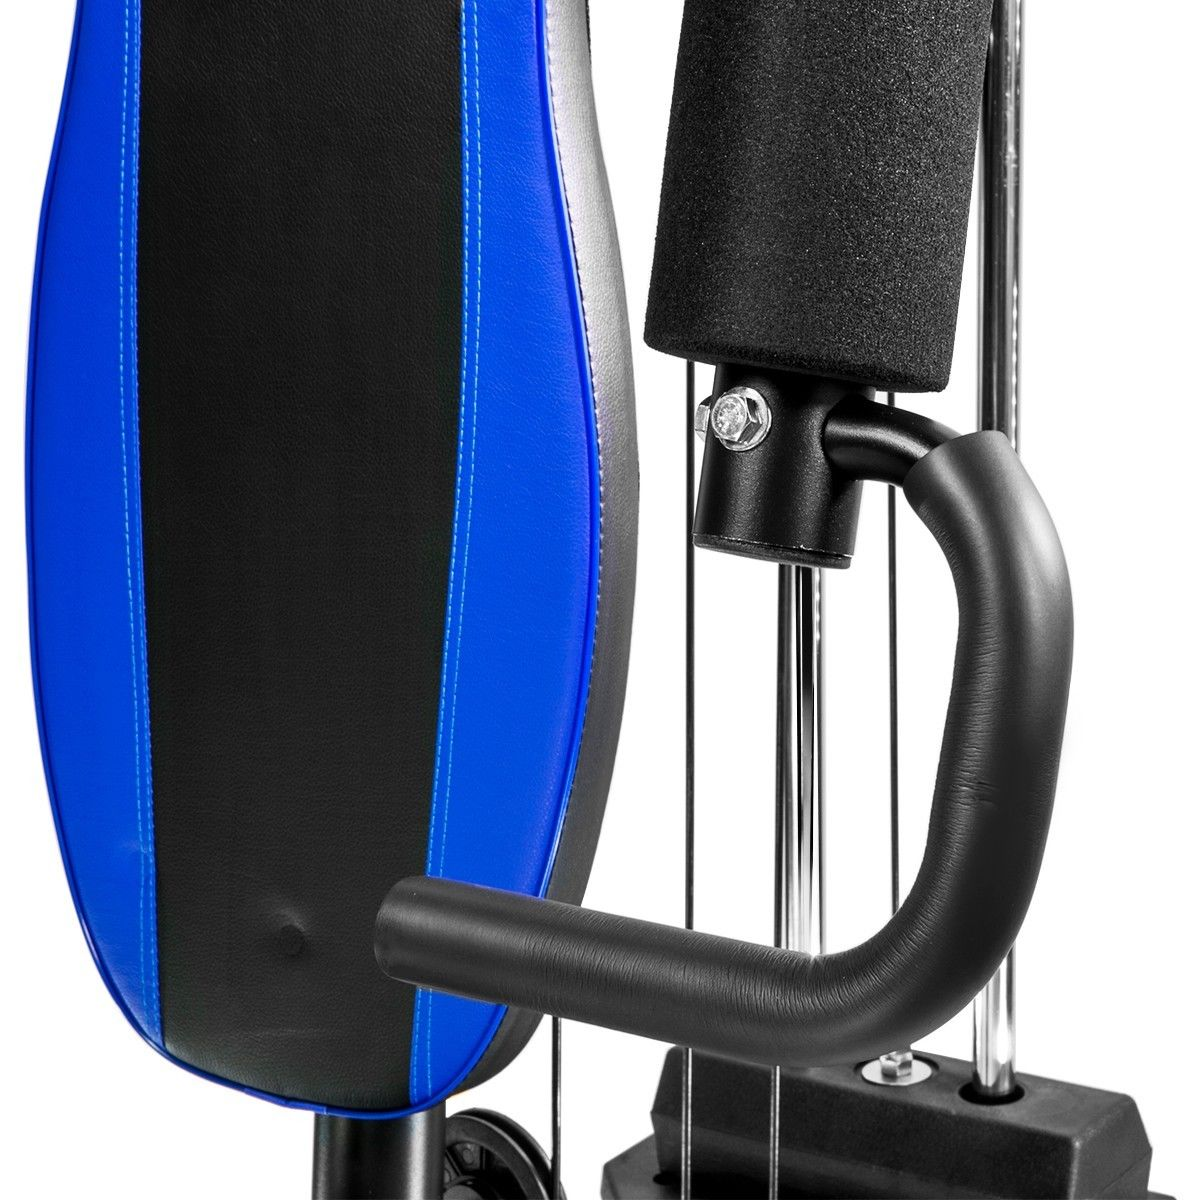 Sensational Details About Home Gym Strength Training Workout Equipment Weight Bench Exercise Fitness Dailytribune Chair Design For Home Dailytribuneorg